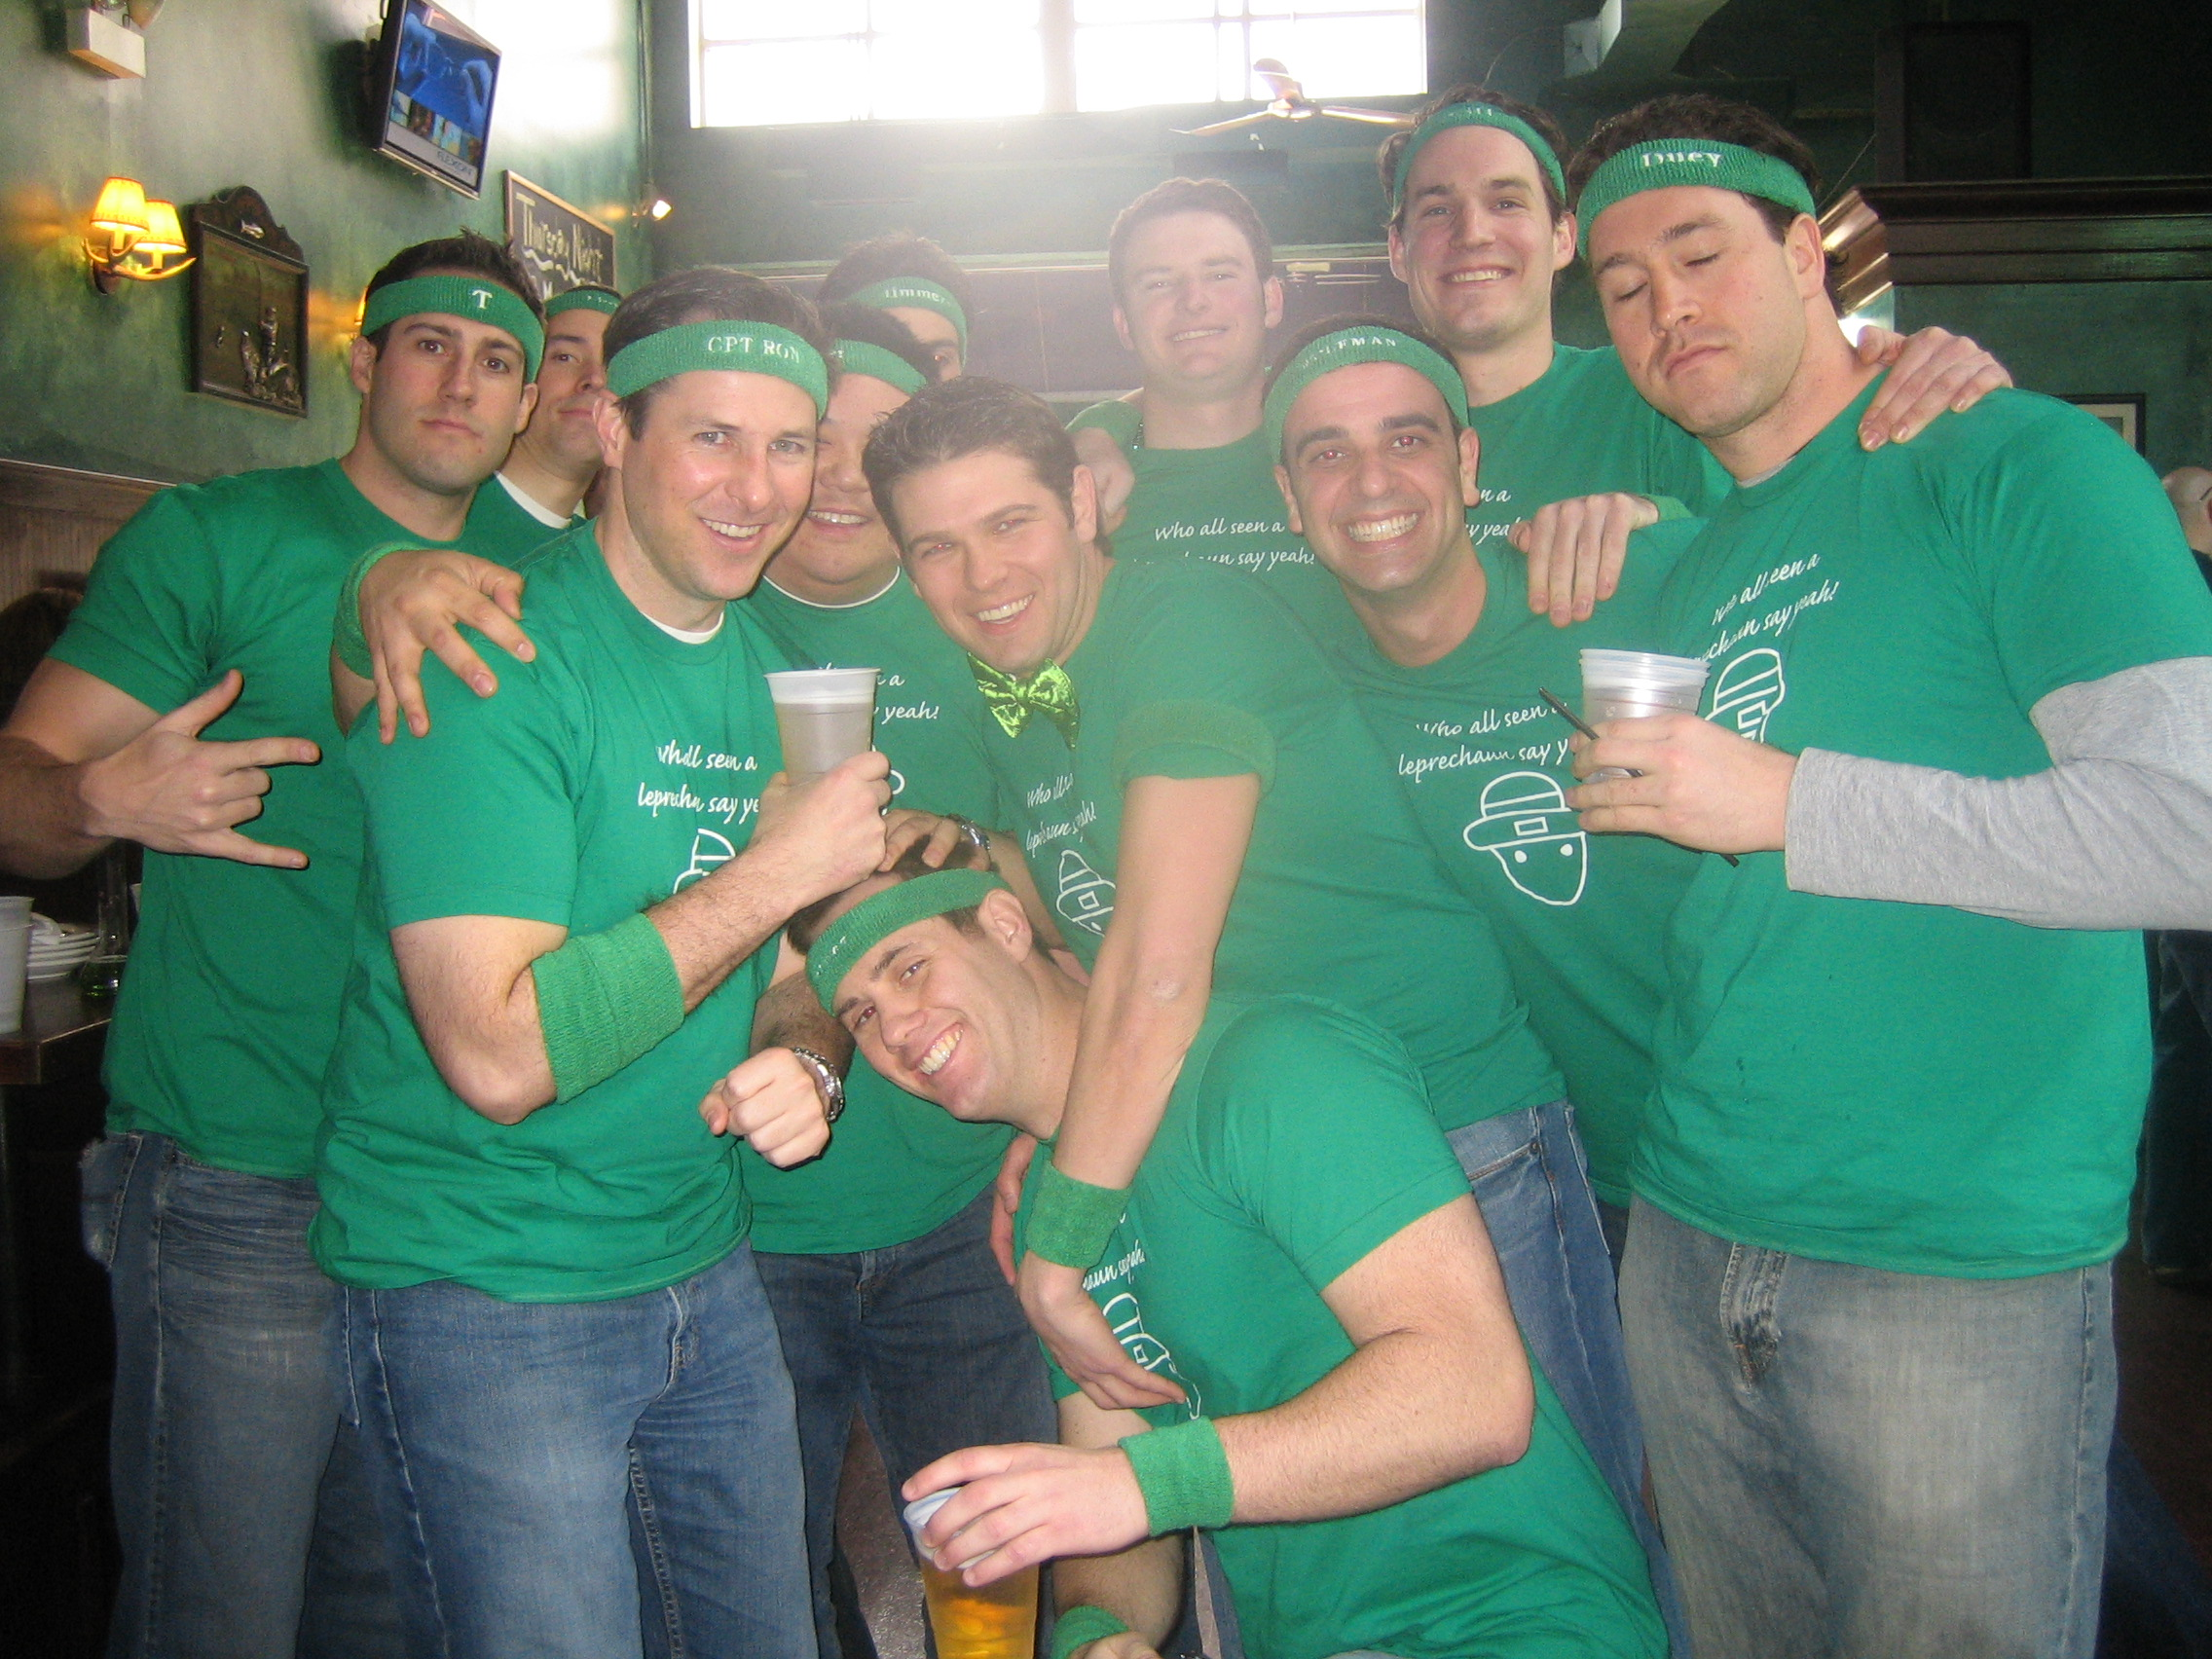 Design your own t shirt chicago - Who All Seen A Leprechaun Say Yeah T Shirt Photo